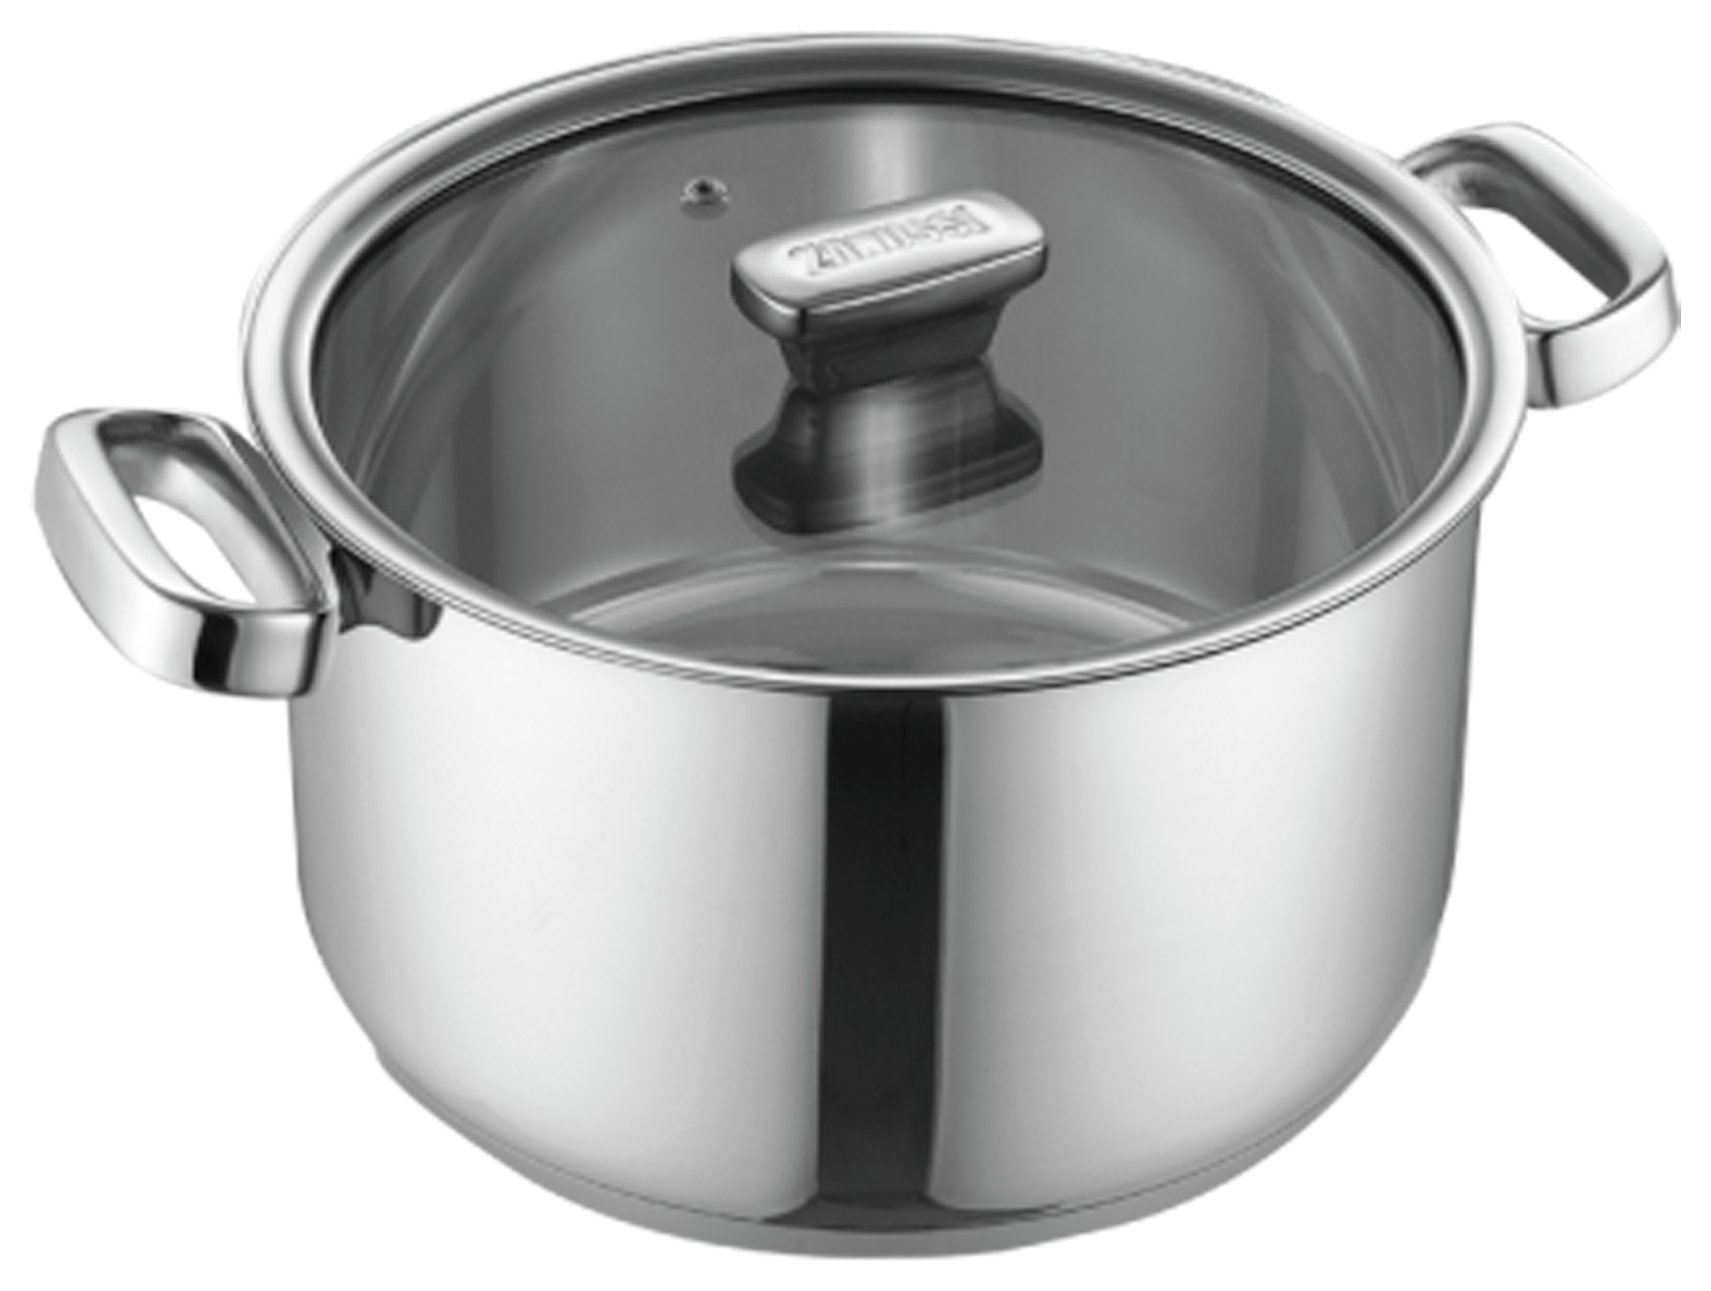 Zanussi Positano 24cm Stainless Steel Casserole Pot with Lid